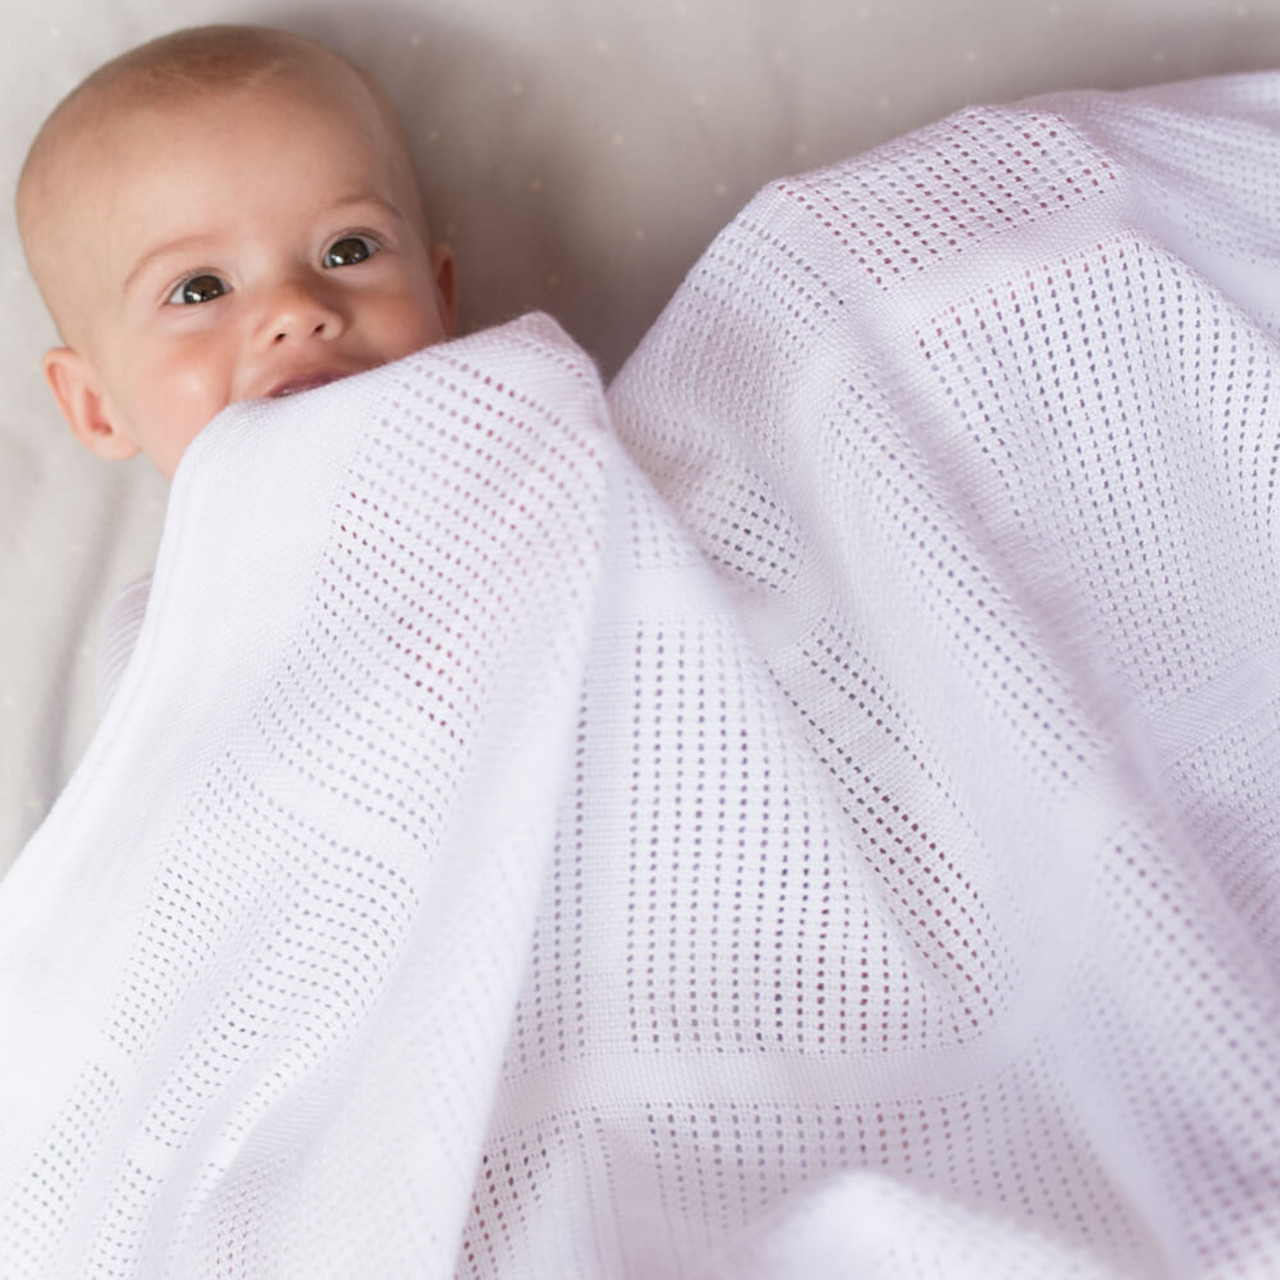 Little Bamboo Bassinet Cellular Blanket at Baby Barn Discounts Little Bamboo's silky-soft Airflow Bassinet Cellular Blanket is a baby's best friend and beautifully breathable!